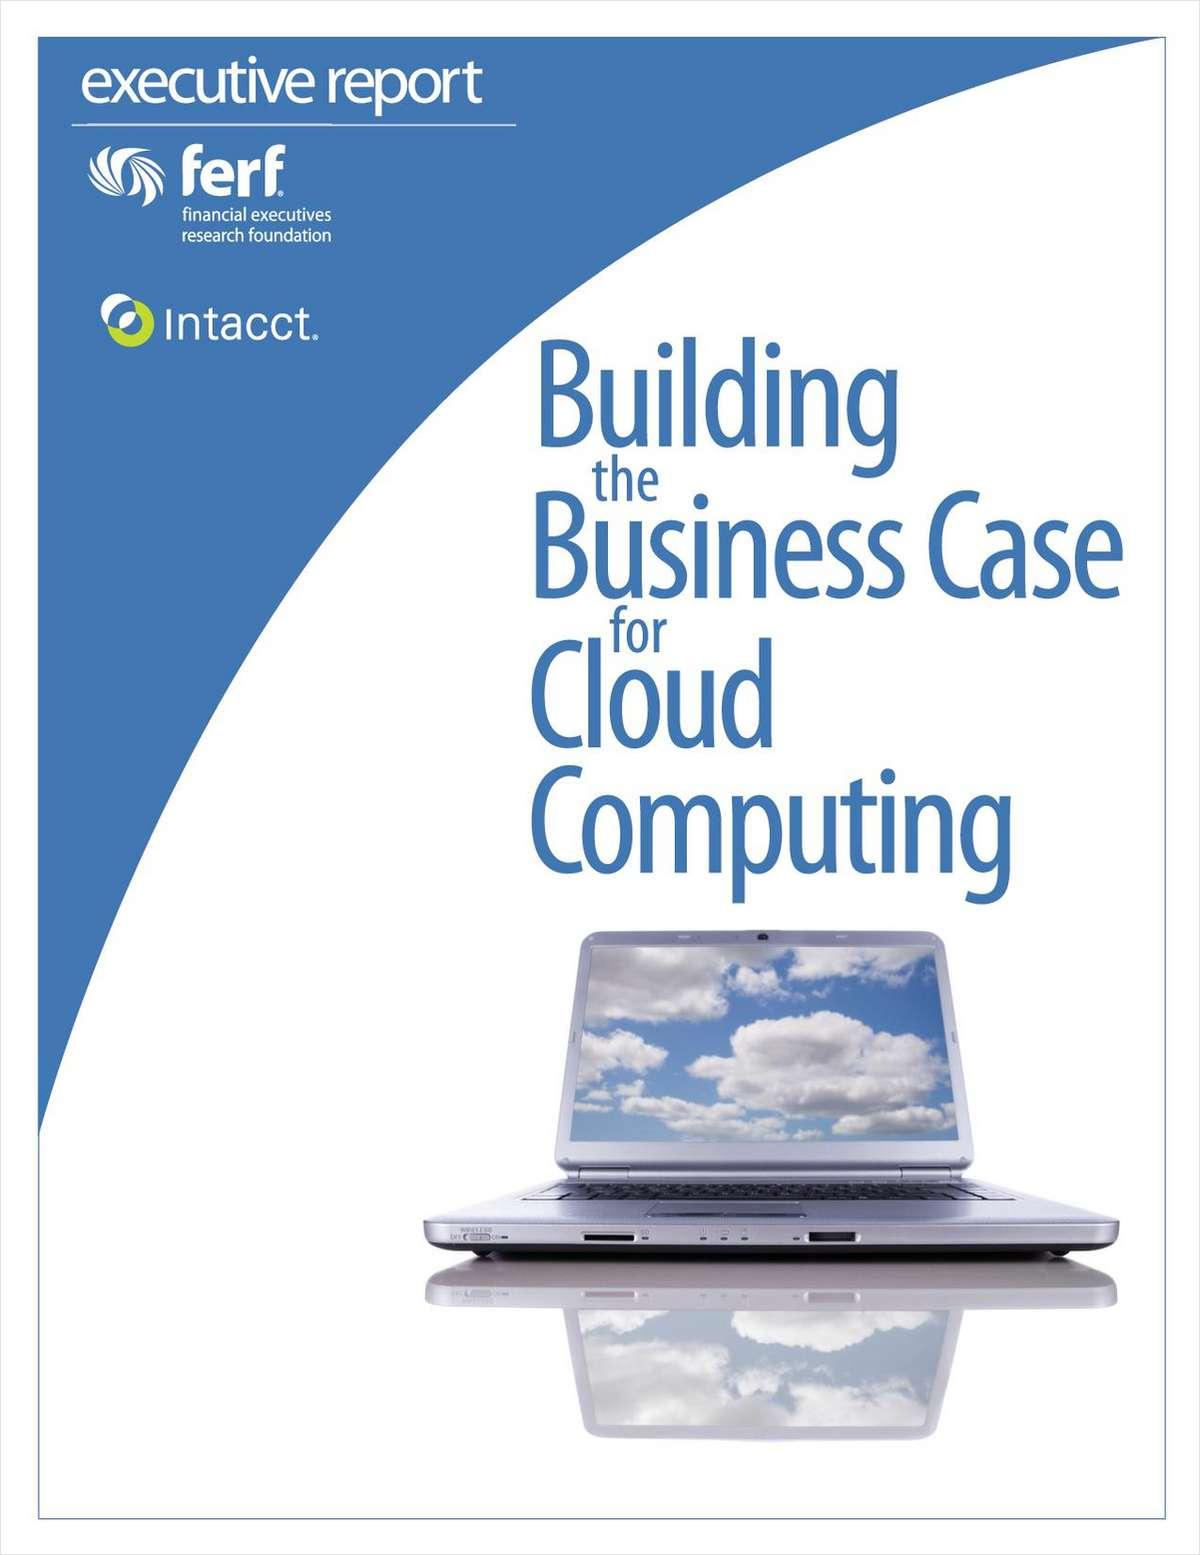 business computing report Report writing & business analysis projects for £20 - £250 for this report i need someone who has knowledge in computing such cloud computing etcand business, things like strategic analysis.